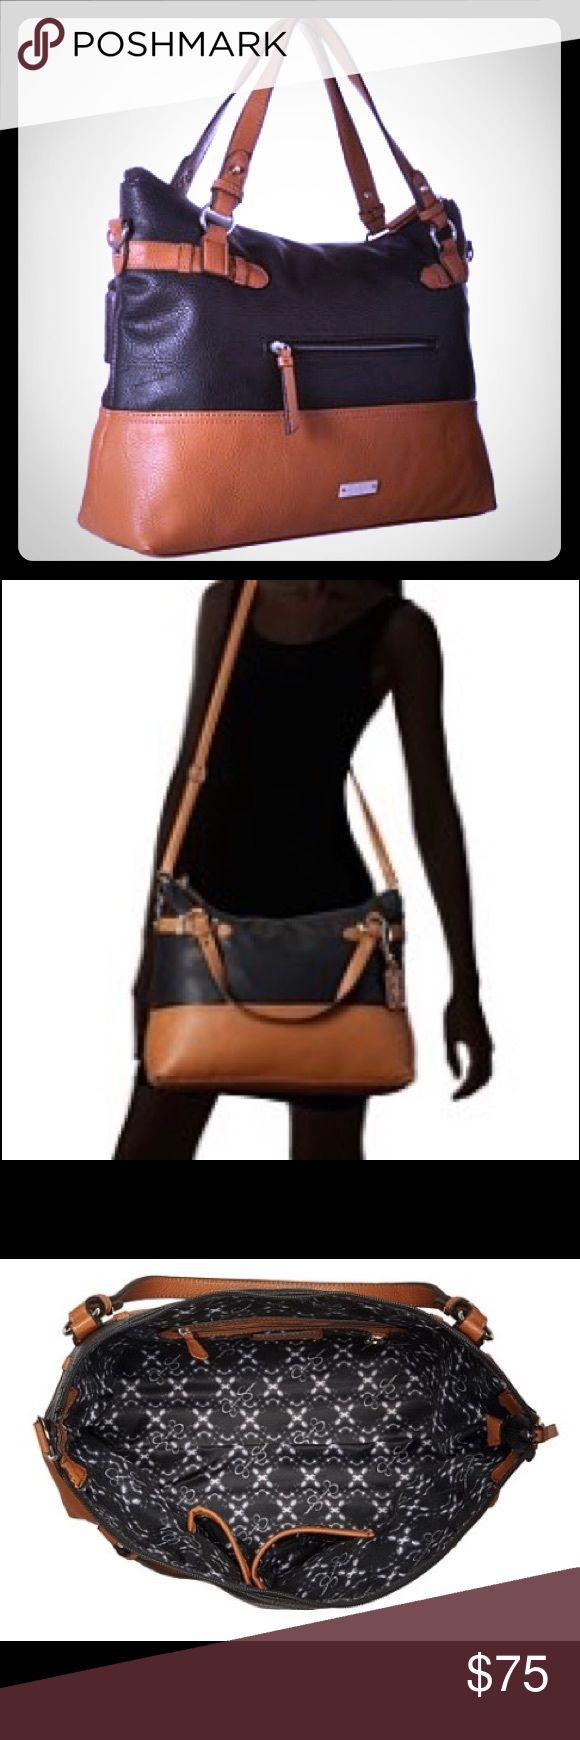 NWT Jessica Simpson Crossbody Katalina in Black This gorgeous large cross body bag from the Jessica Simpson collection is the perfect way to carry everything you need in perfect style. Jessica Simpson Bags Crossbody Bags